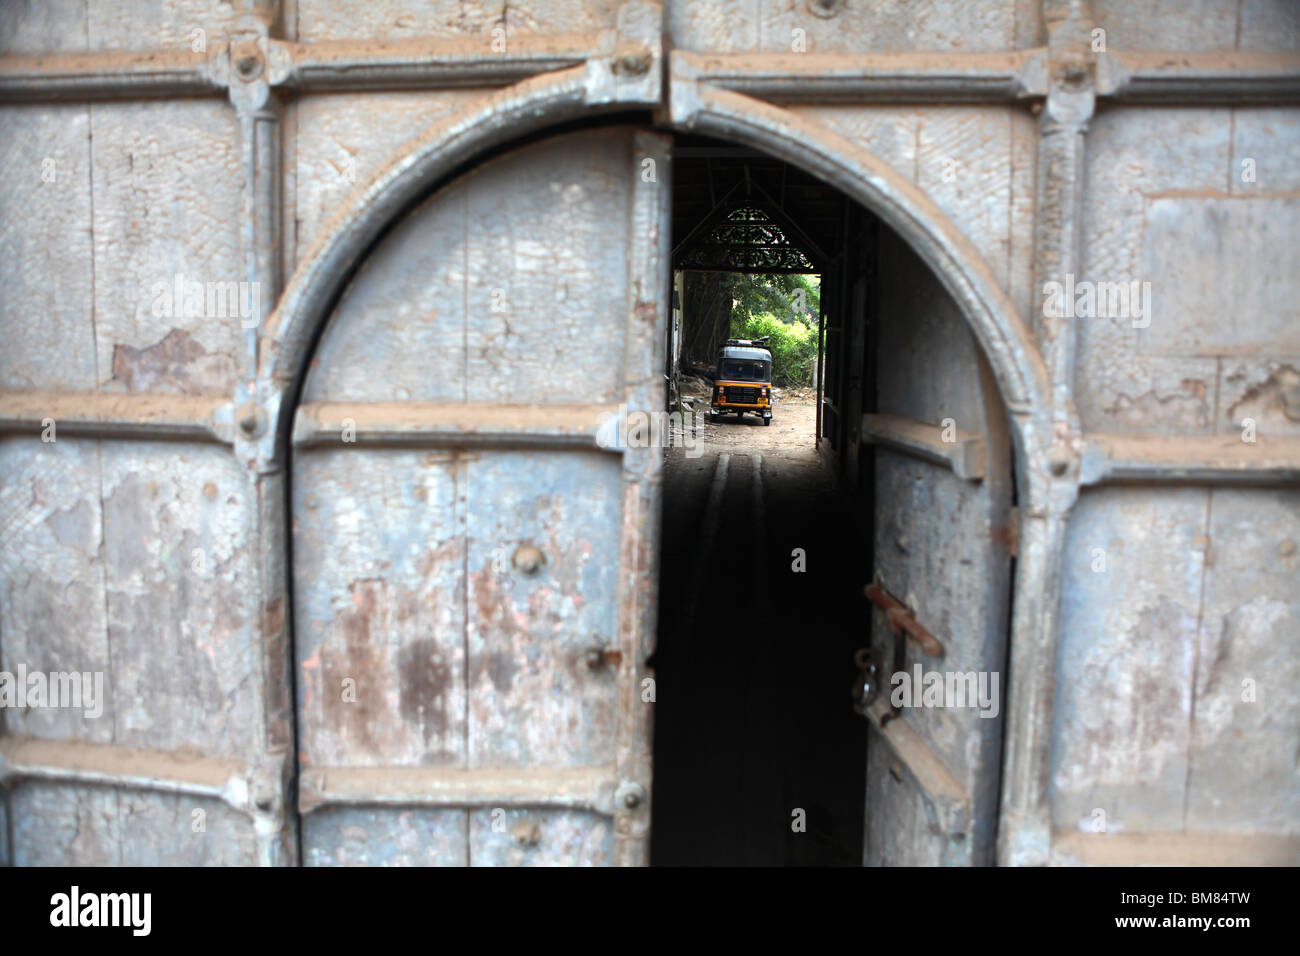 View through an open doorway, showing a tuk tuk in the distance in Jew Town in Kochi, formerly known as Cochin in - Stock Image